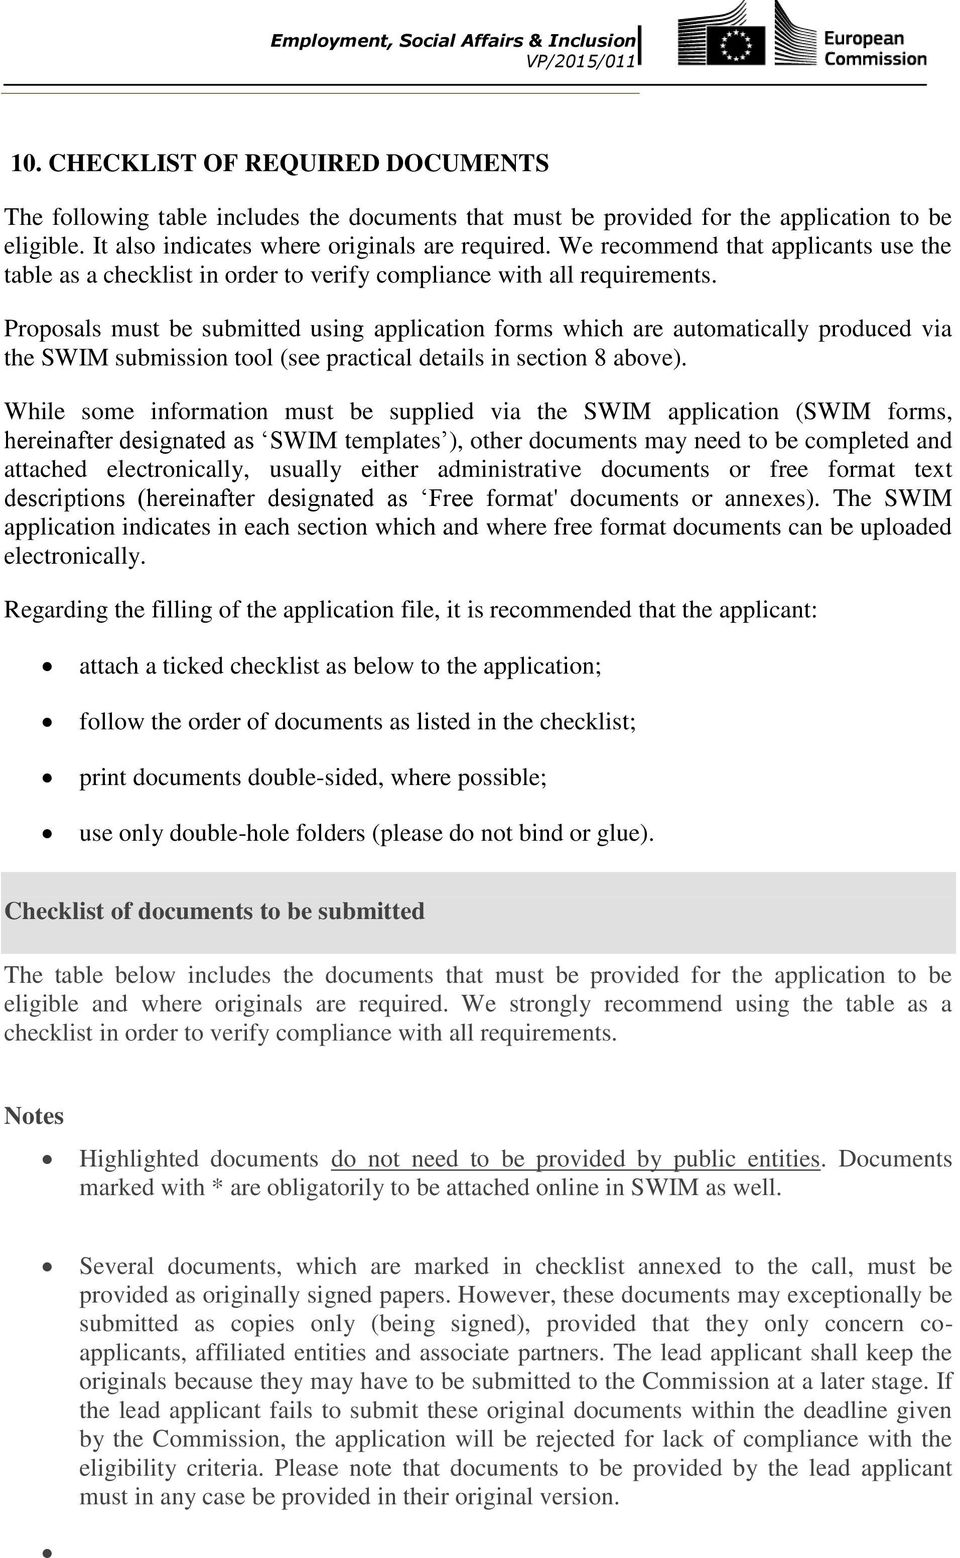 Proposals must be submitted using application forms which are automatically produced via the SWIM submission tool (see practical details in section 8 above).